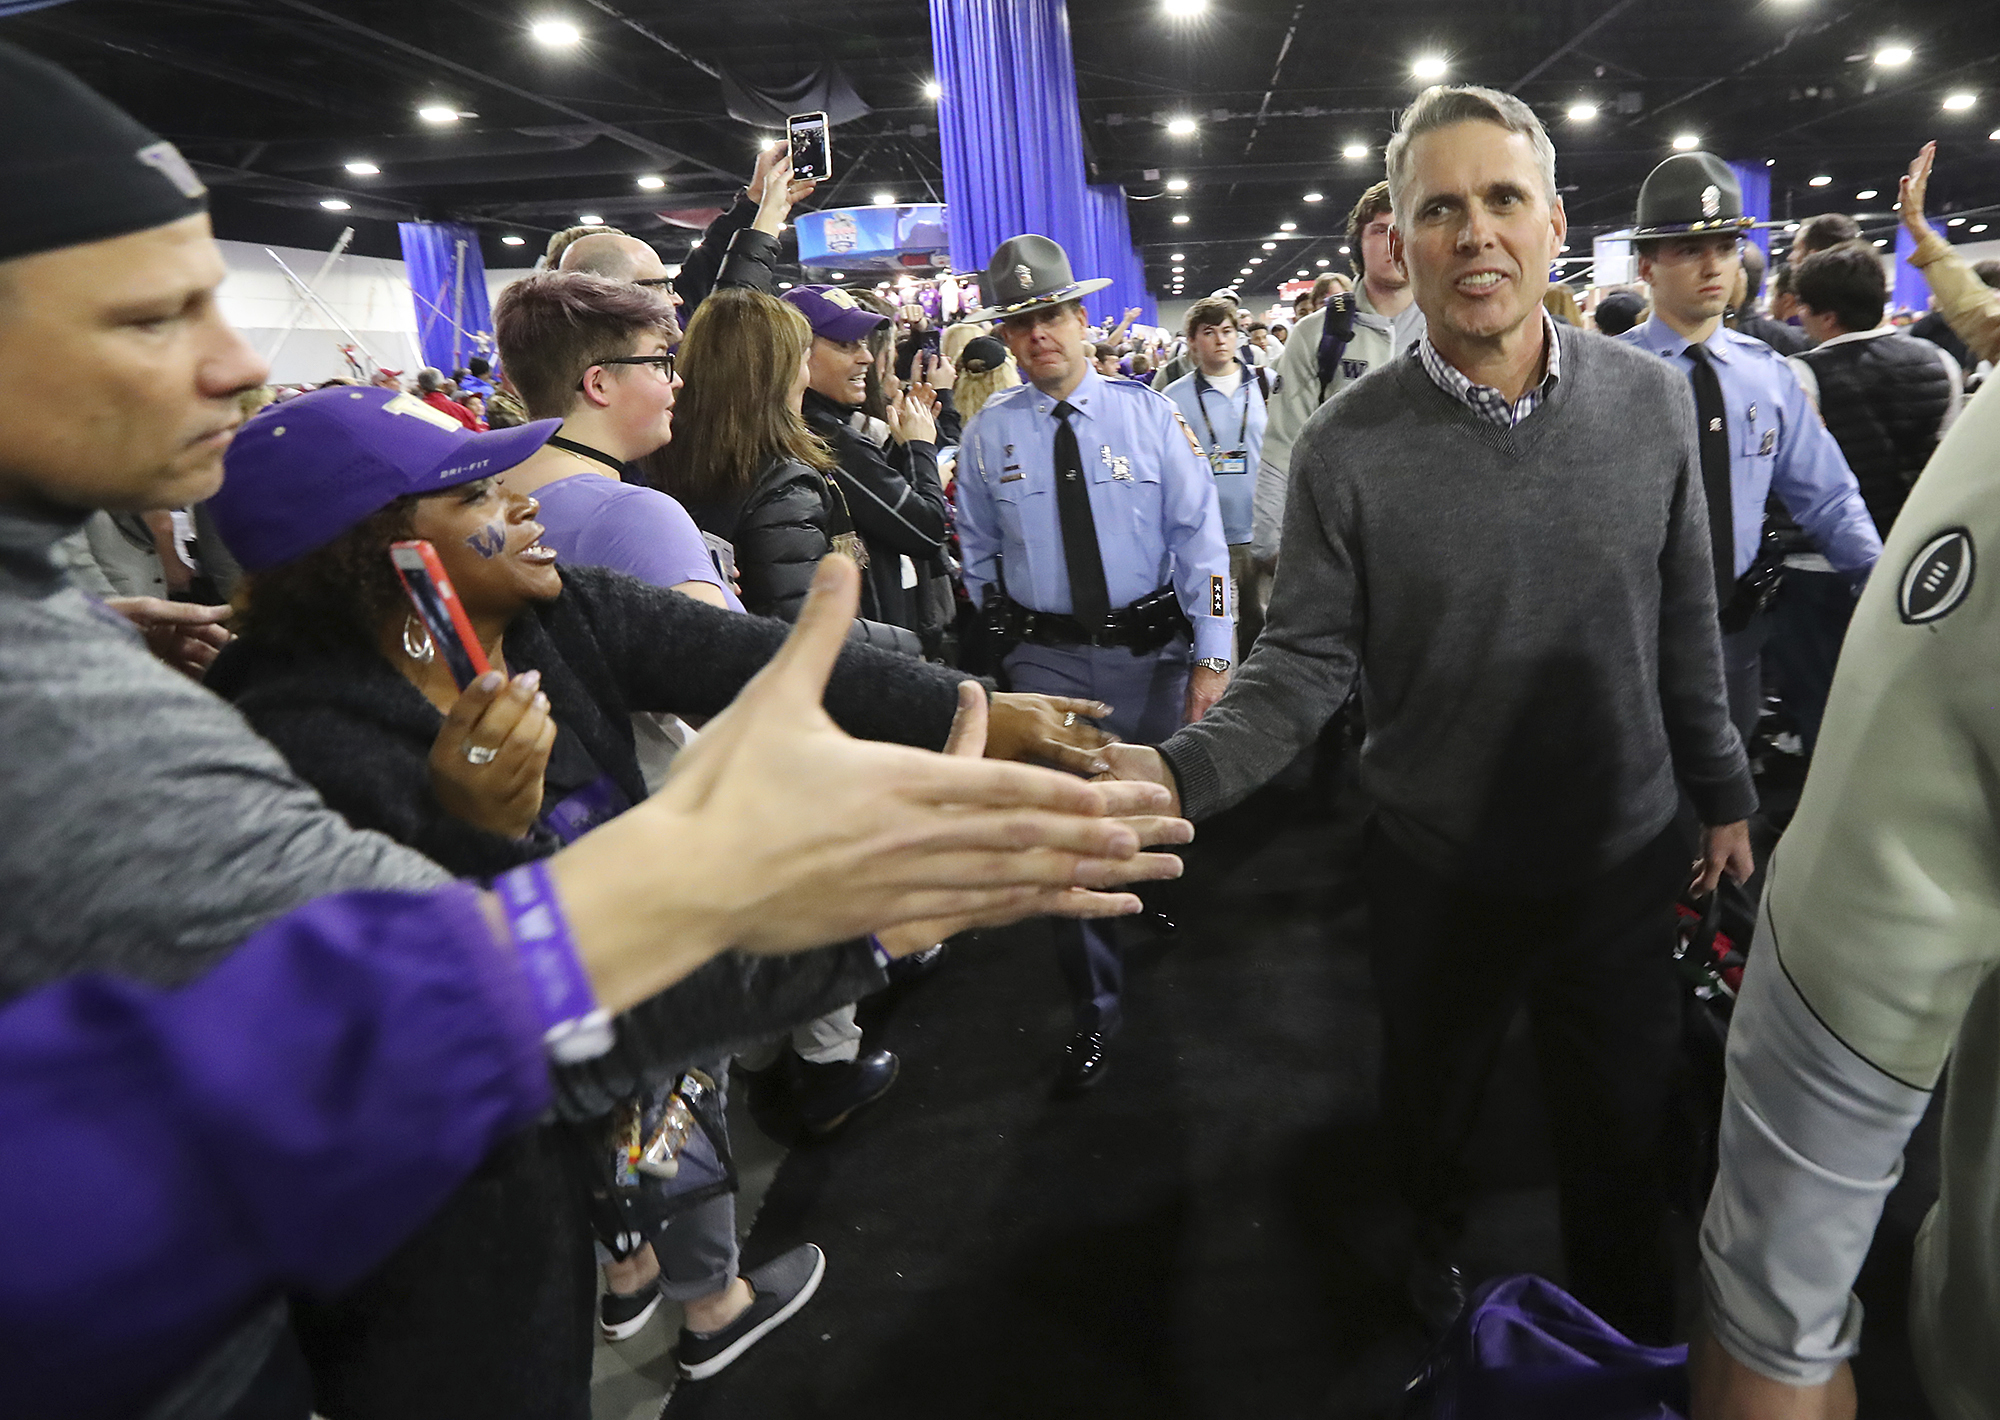 Washington head coach Chris Petersen gets five from fans during the team walk through Fan Fest to the Peach Bowl NCAA college football playoff game against Alabama at the Georgia Dome, Saturday, Dec. 31, 2016, in Atlanta. (Curtis Compton/Atlanta Journal-C